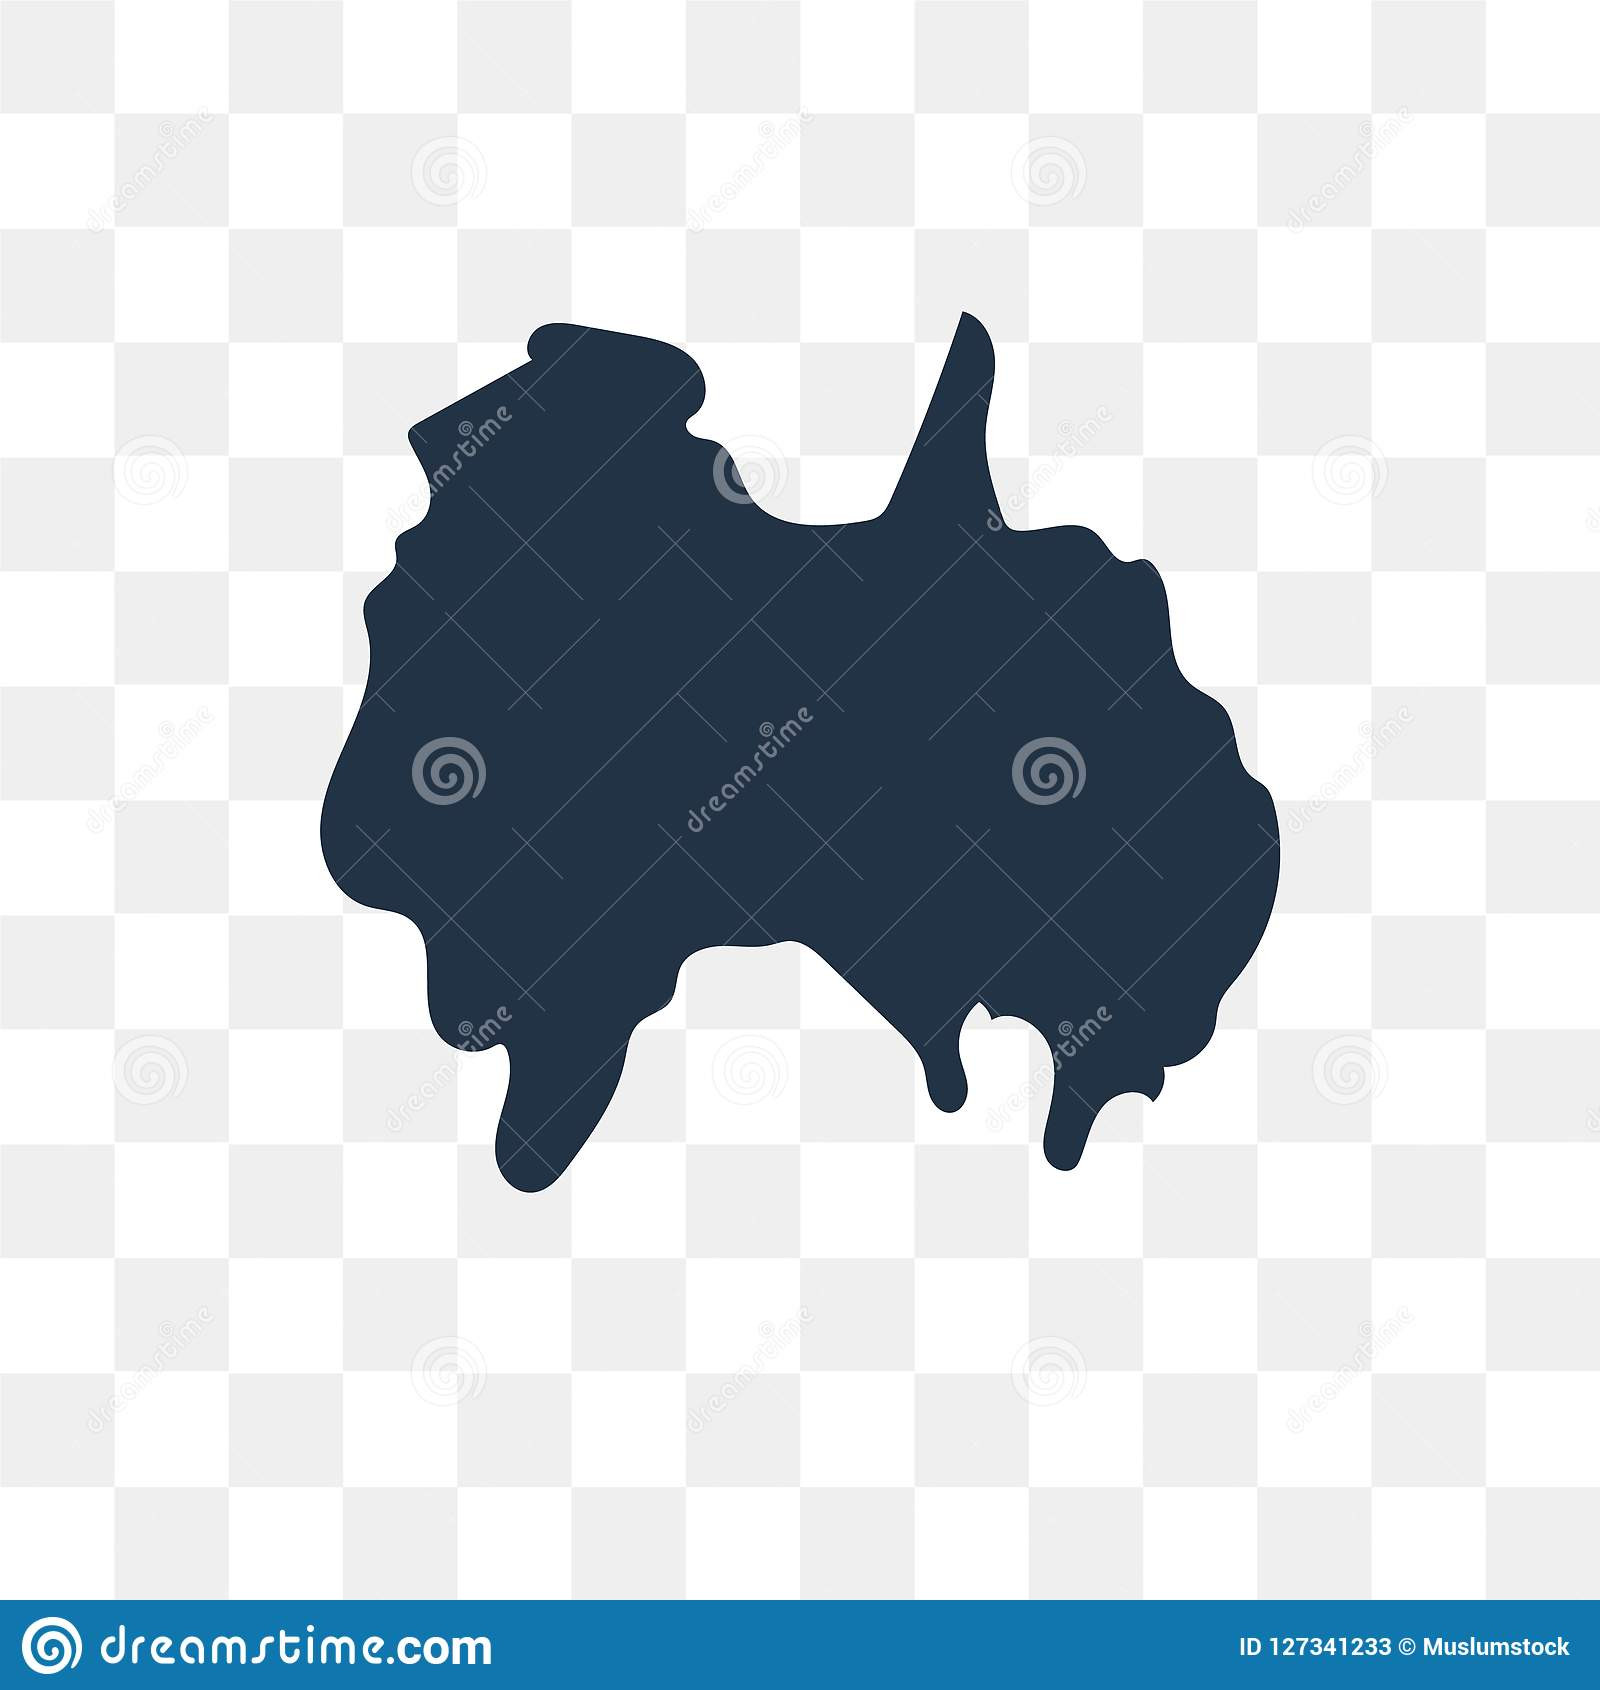 Australia Map Vector.Australia Map Vector Icon Isolated On Transparent Background Au